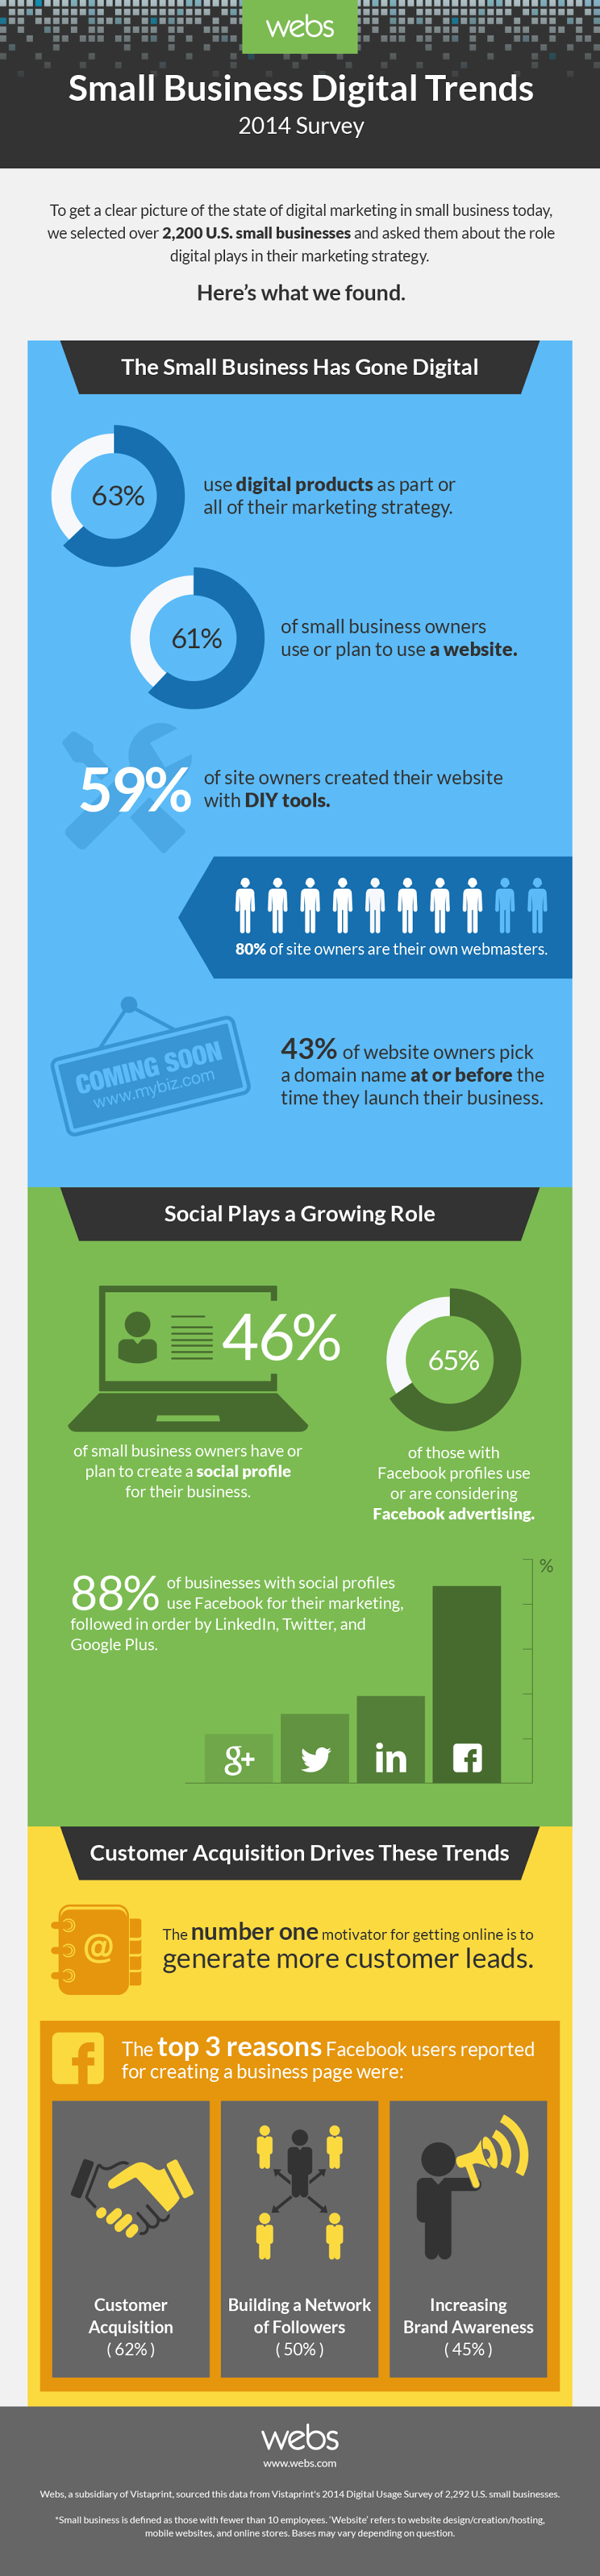 Webs Small Business #DigitalMarketing and #SocialMedia Trends 2014 - #infographic #internetmarketing